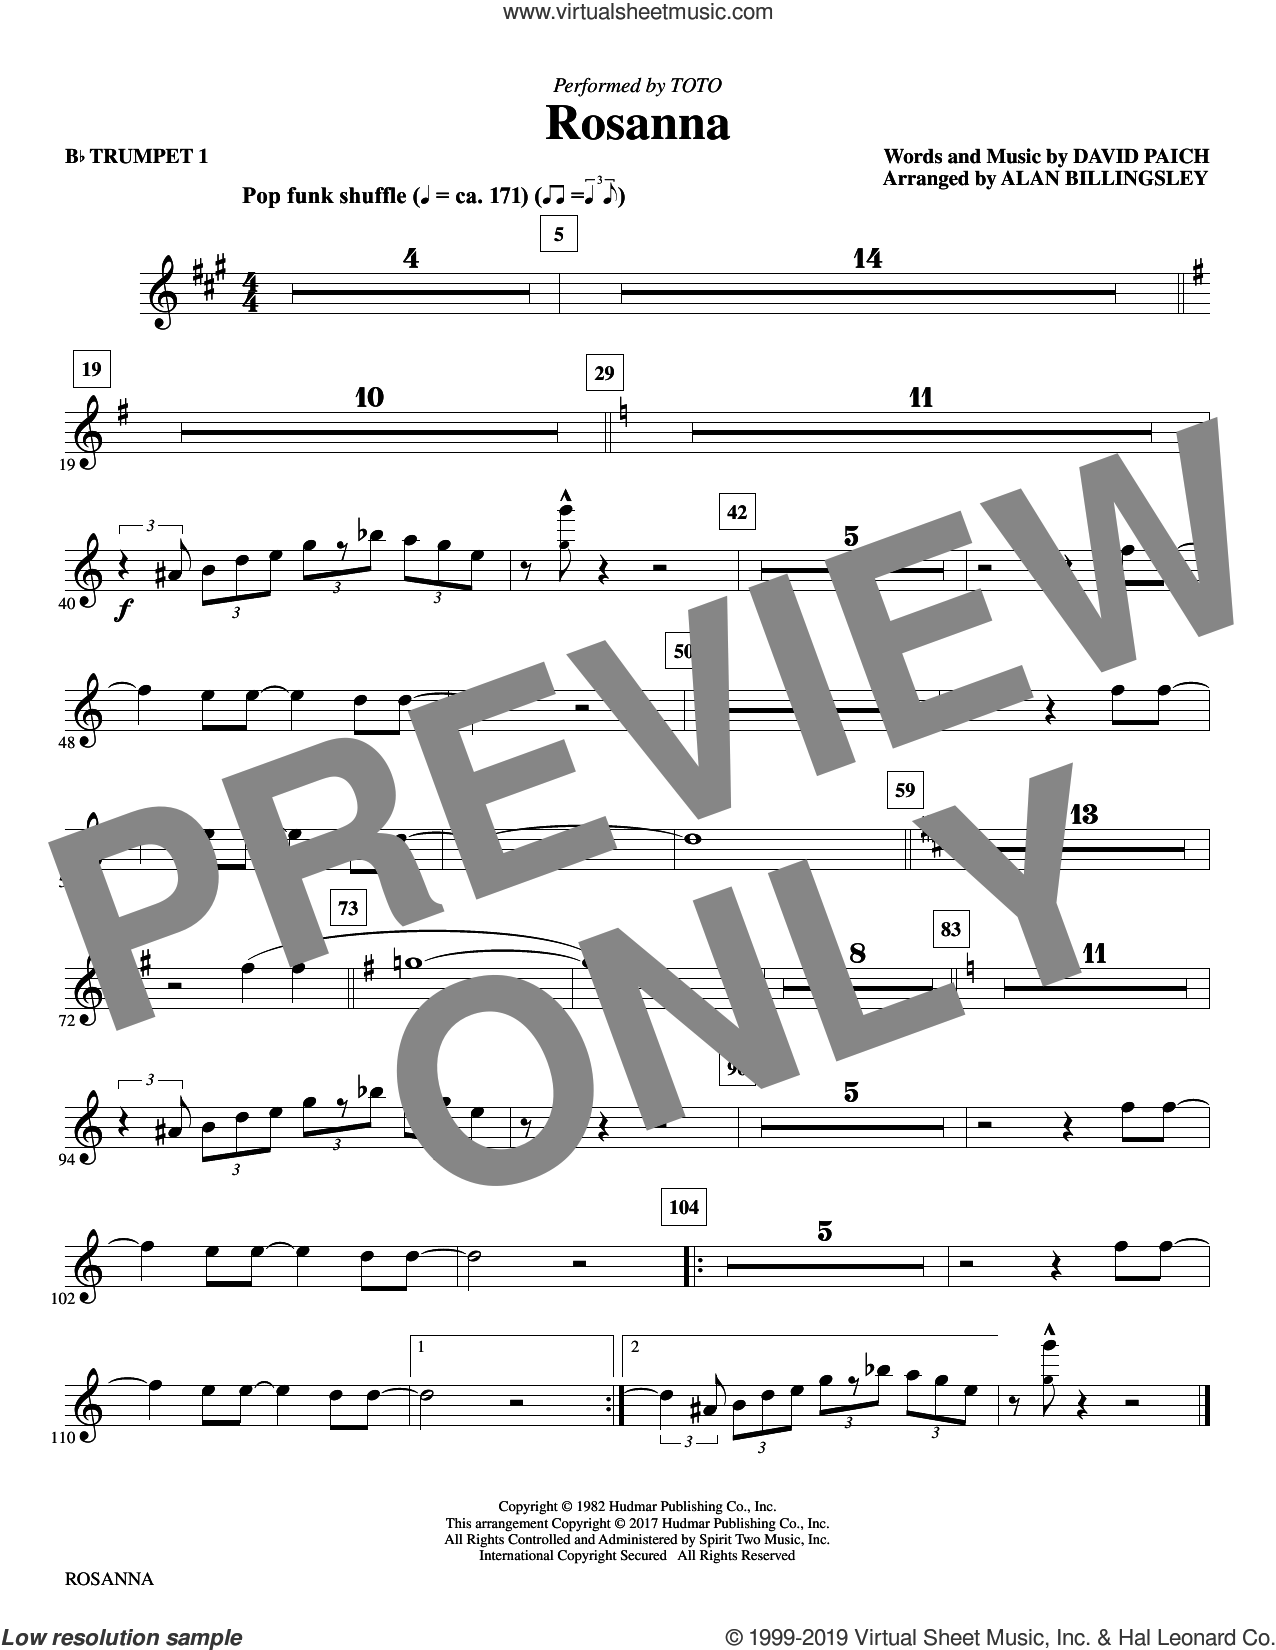 Rosanna (complete set of parts) sheet music for orchestra/band by Alan Billingsley, David Paich and Toto, intermediate skill level